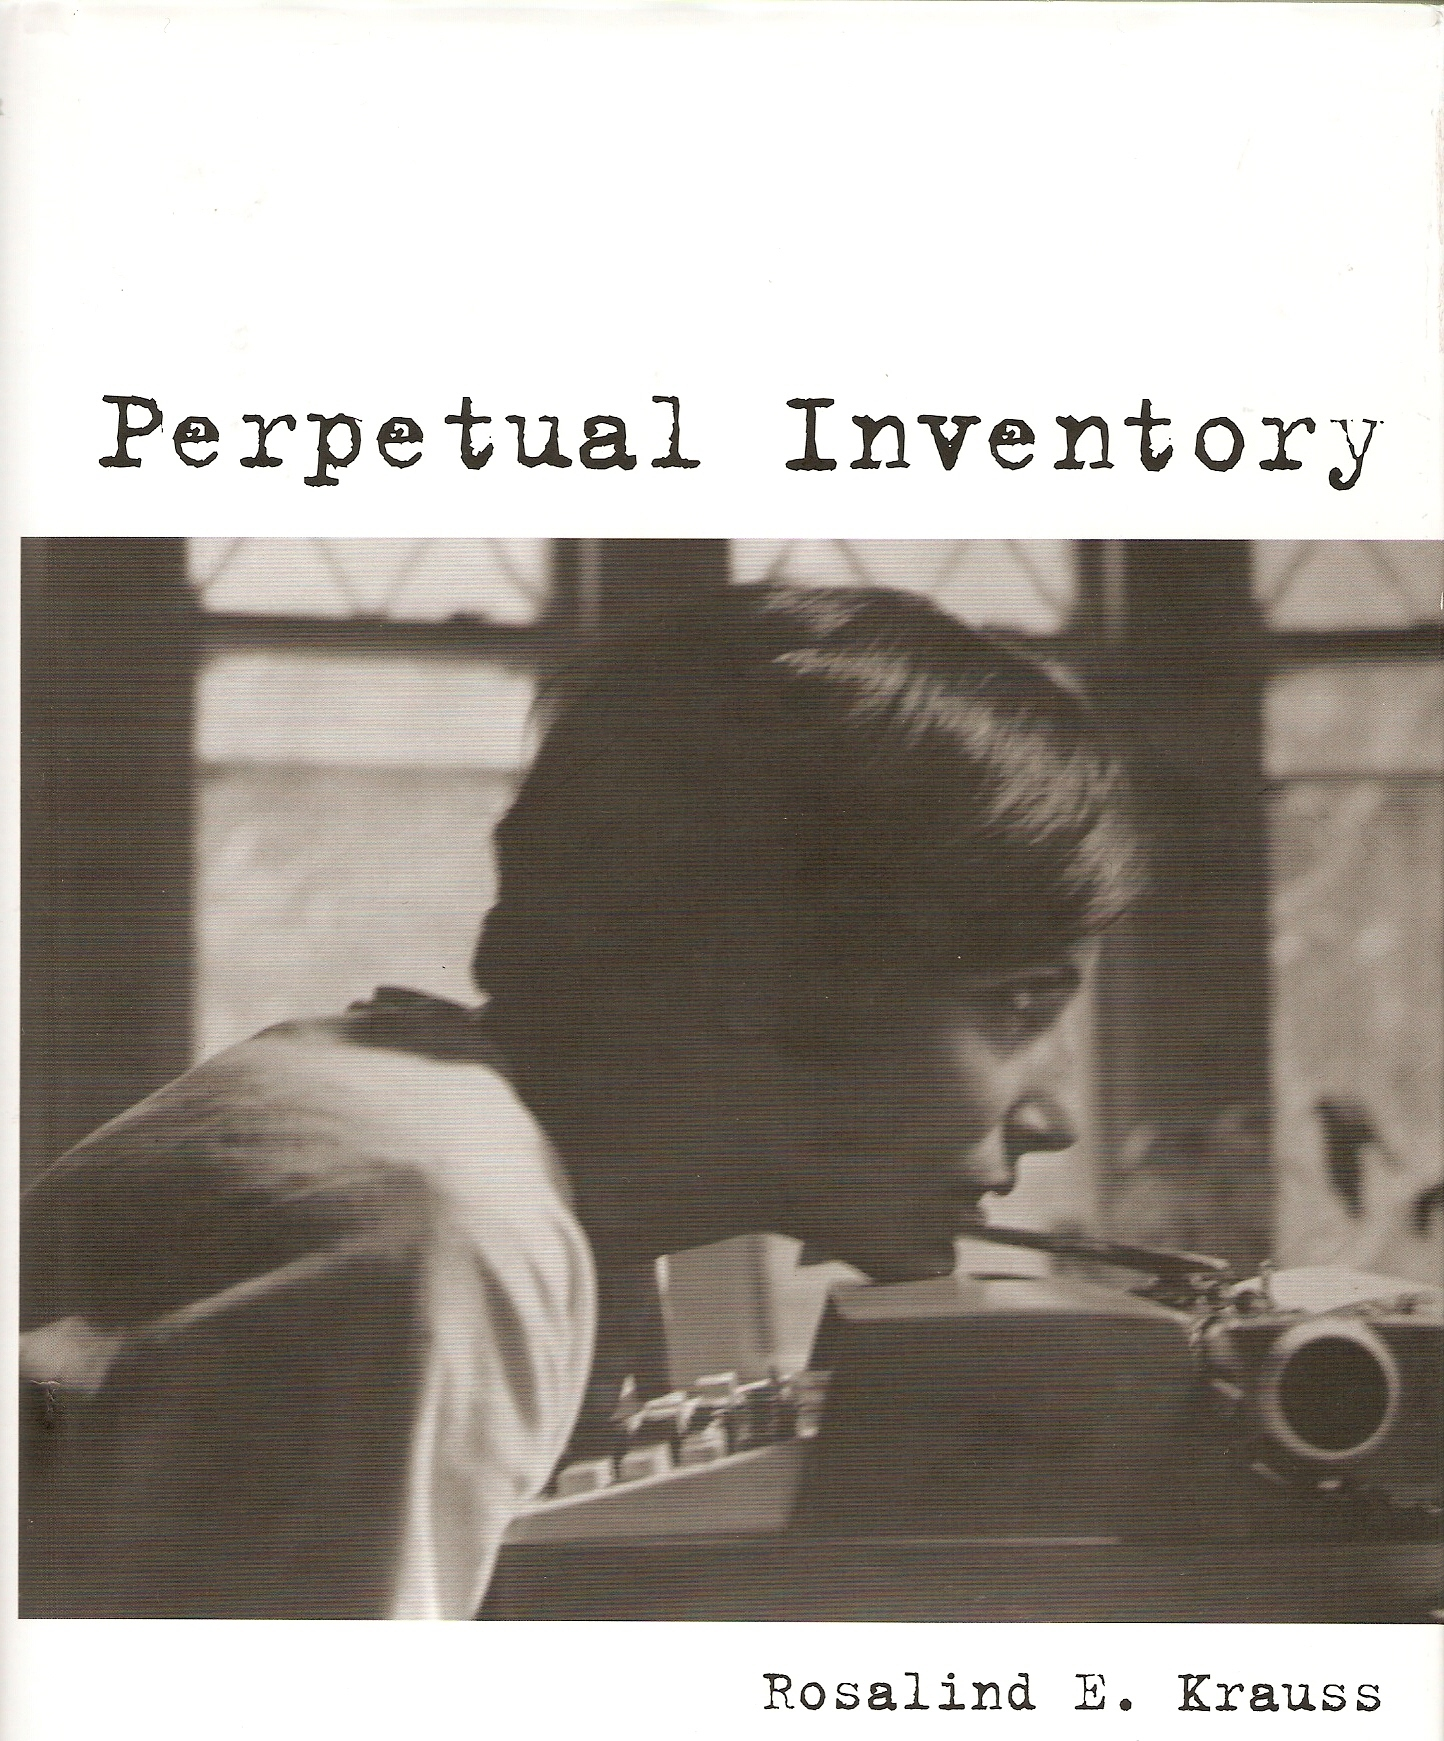 KRAUSS, Rosalind, Perpetual Inventory. Cambridge (Mass.), the MIT Press, 2010